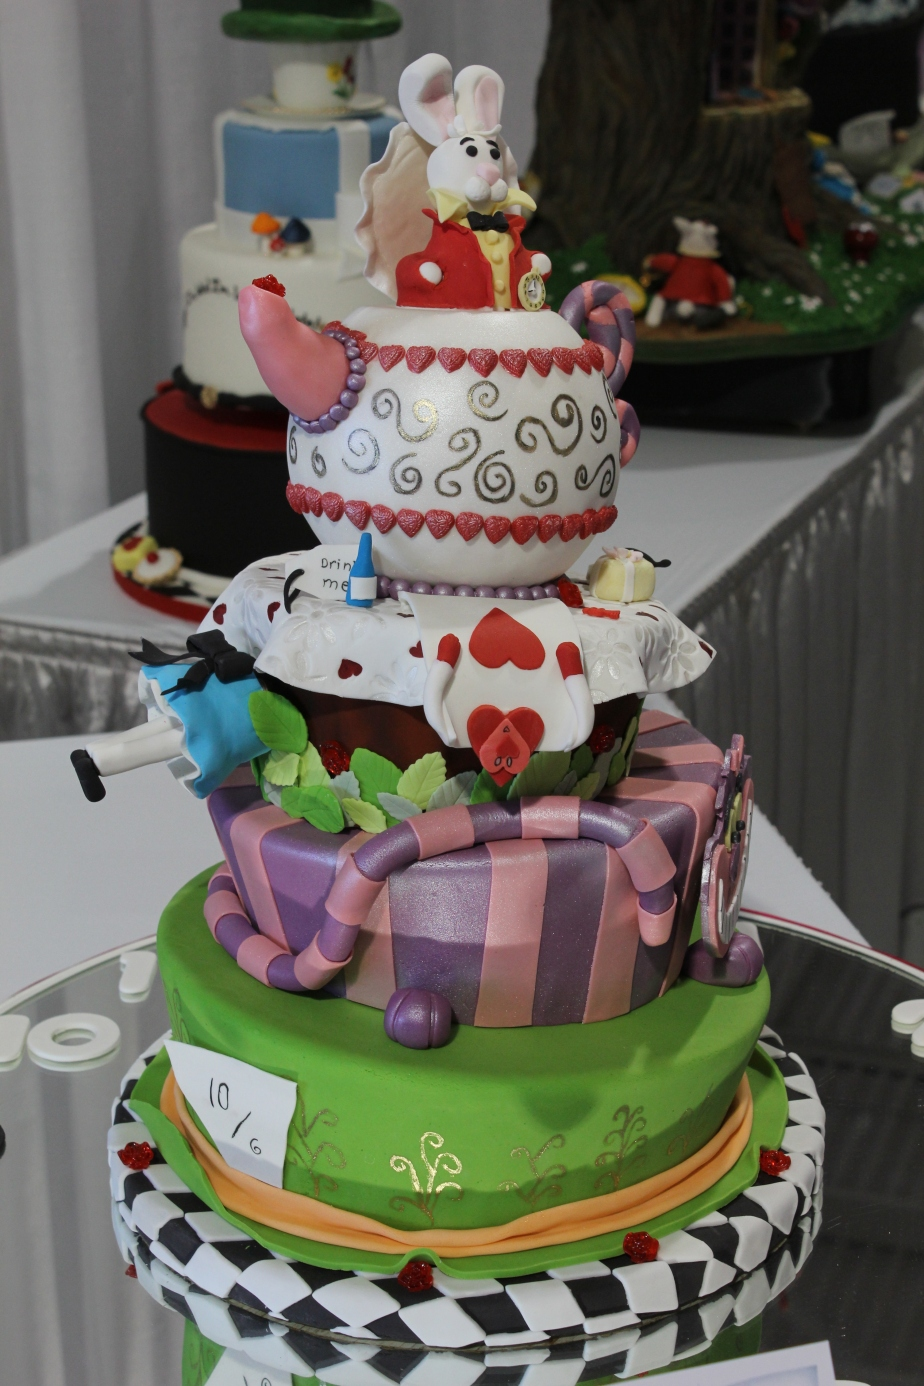 Canada's Baking and Sweets Show with The Cake Boss: BuddyValastro!